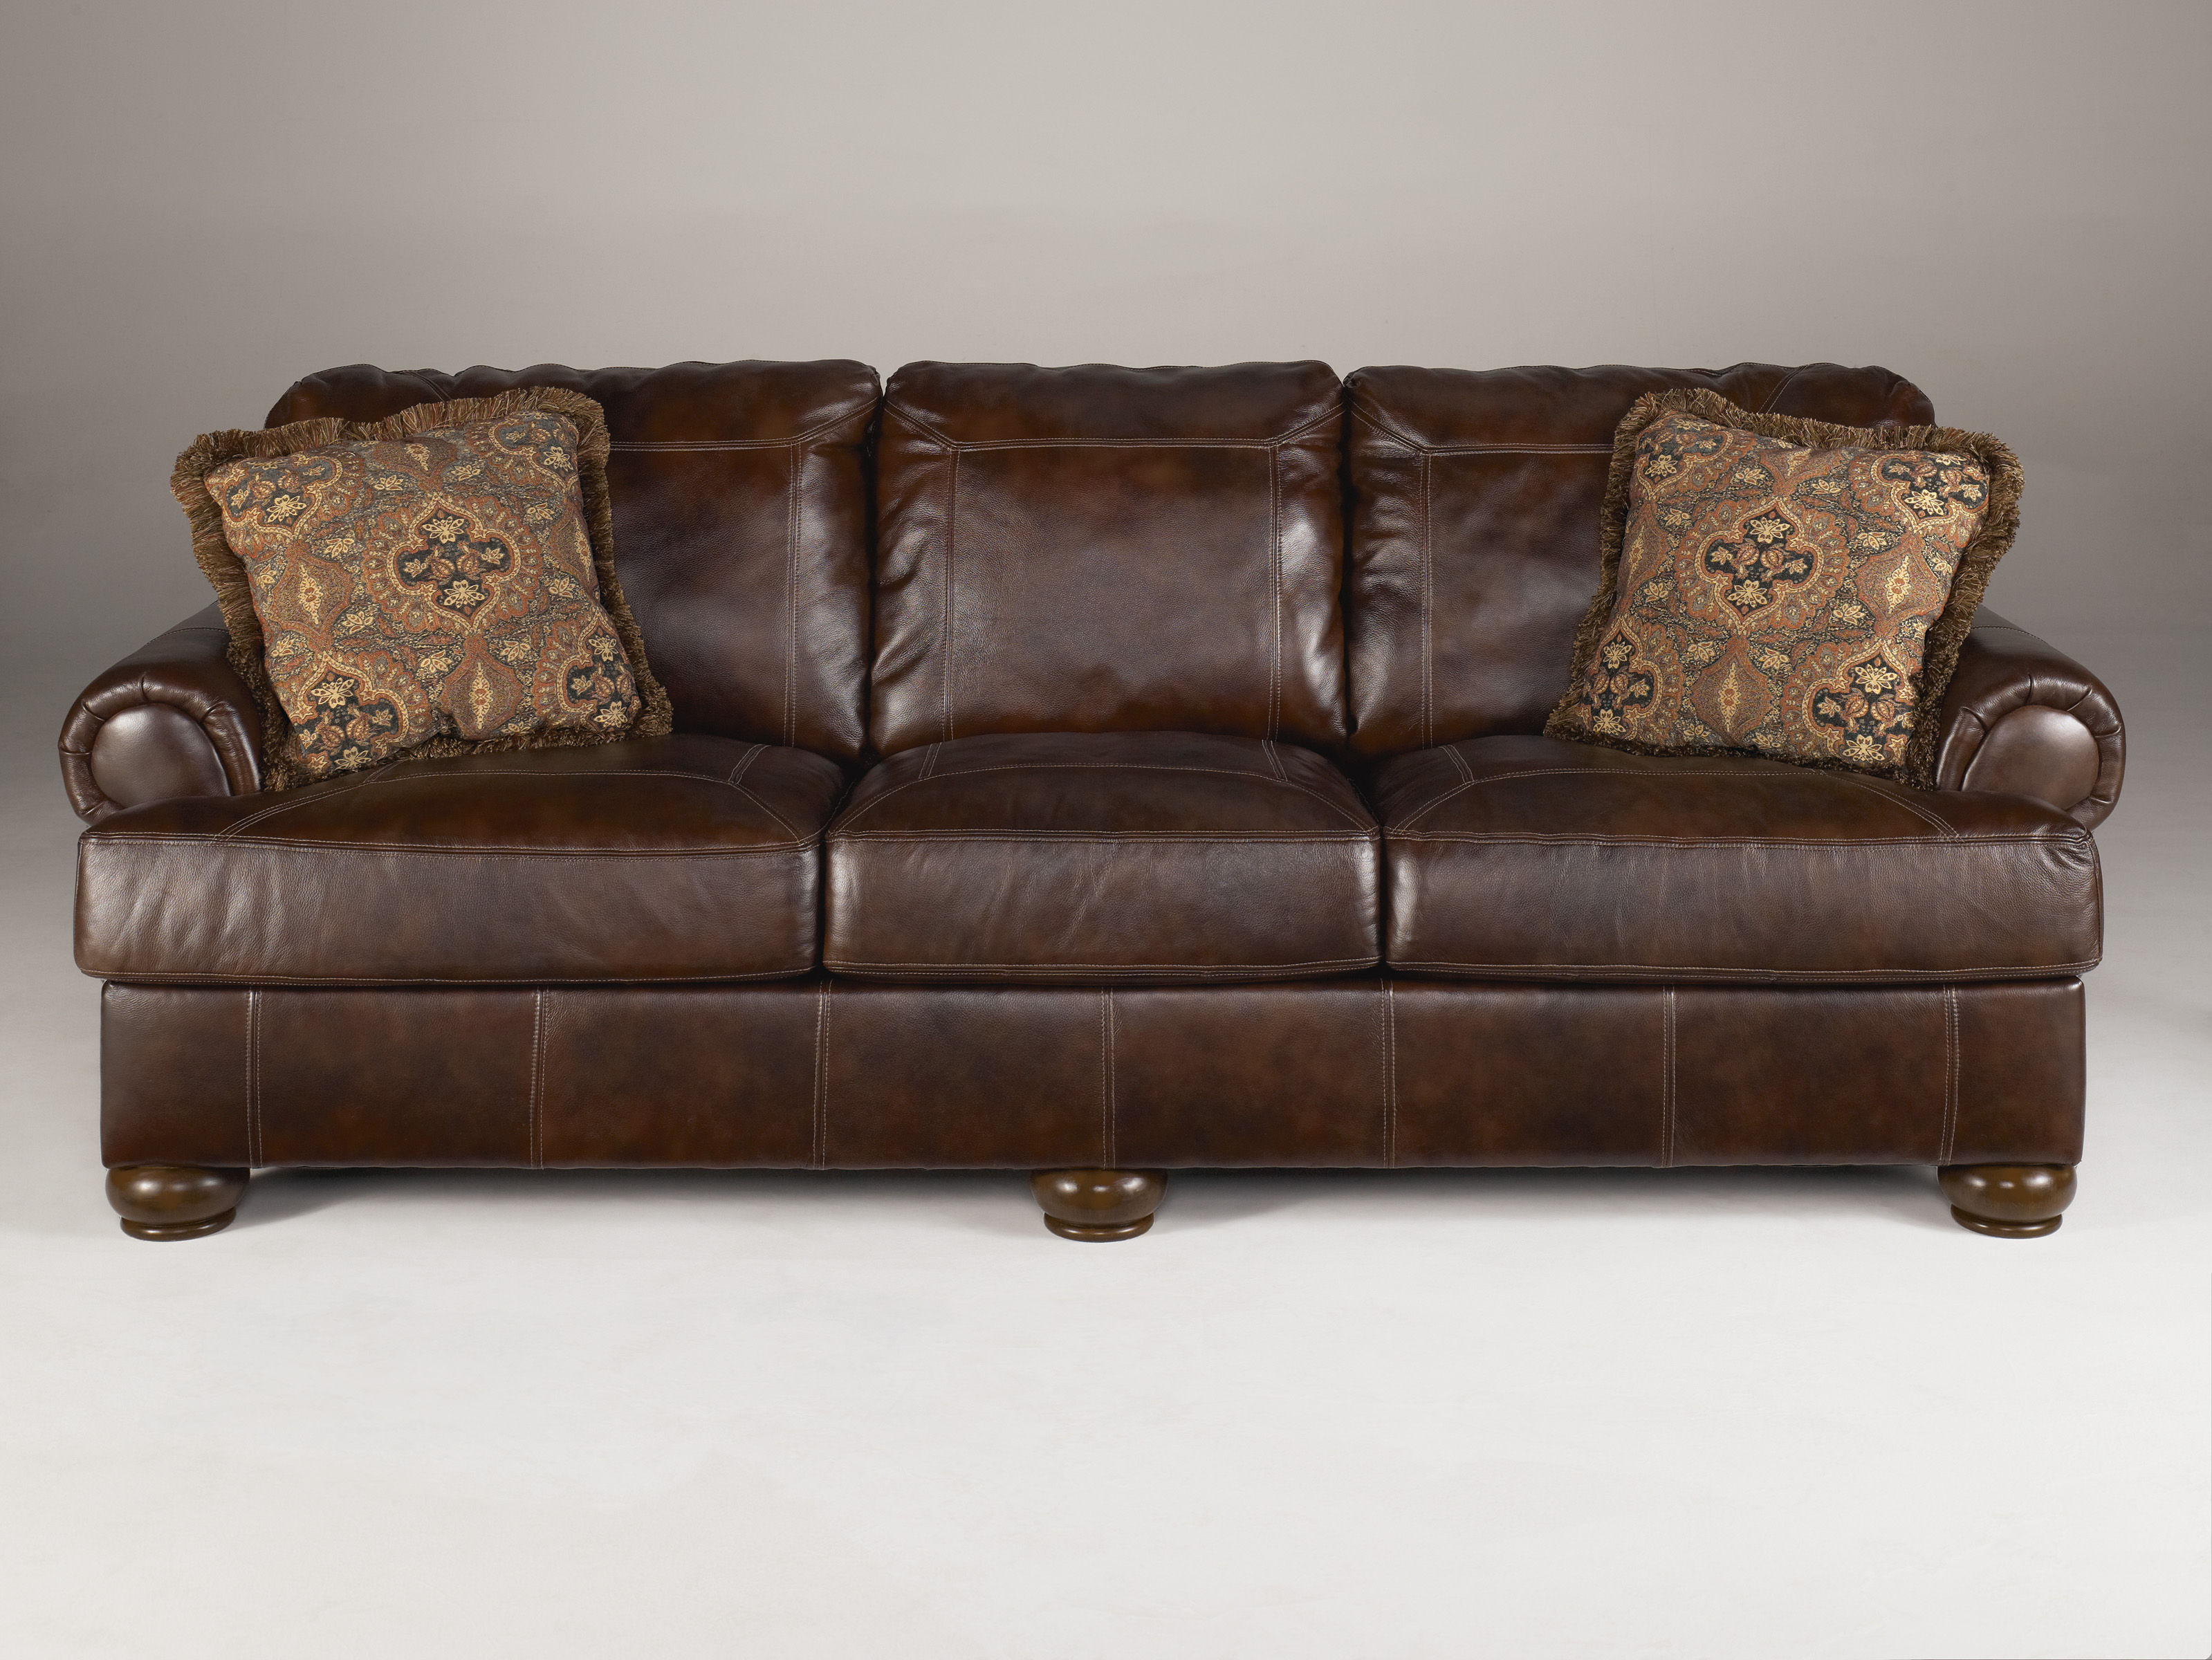 Ashley Furniture Axiom Walnut Sofa | The Classy Home